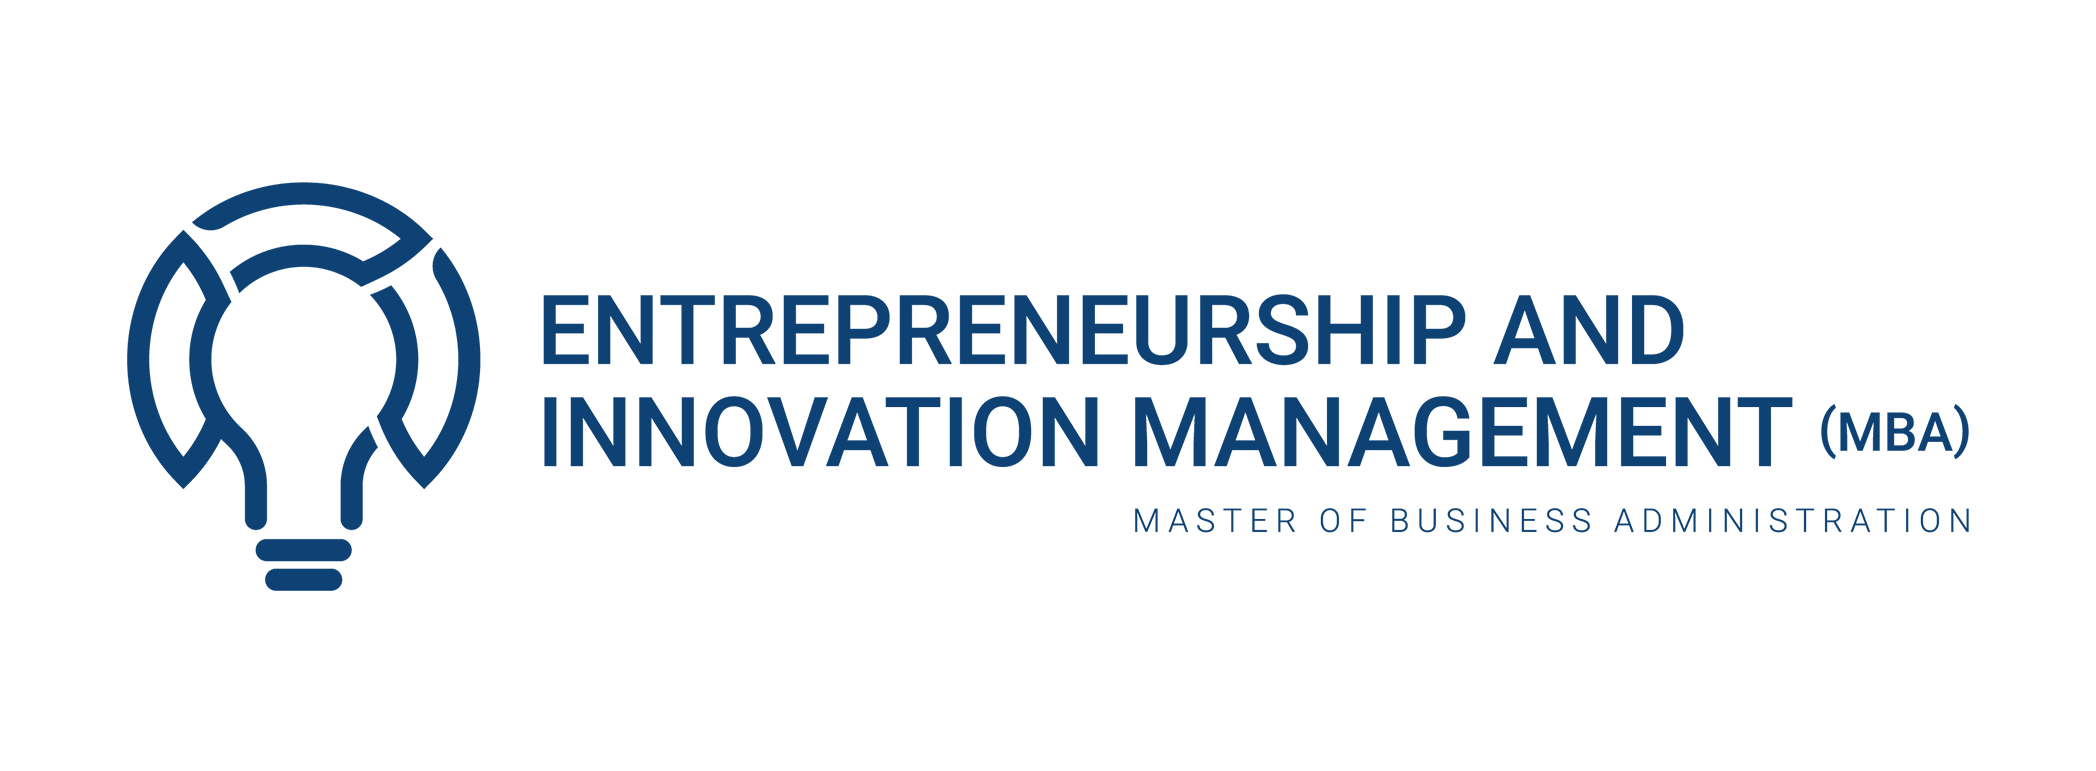 Ostfalia MBA Entrepreneurship & Innovation Management